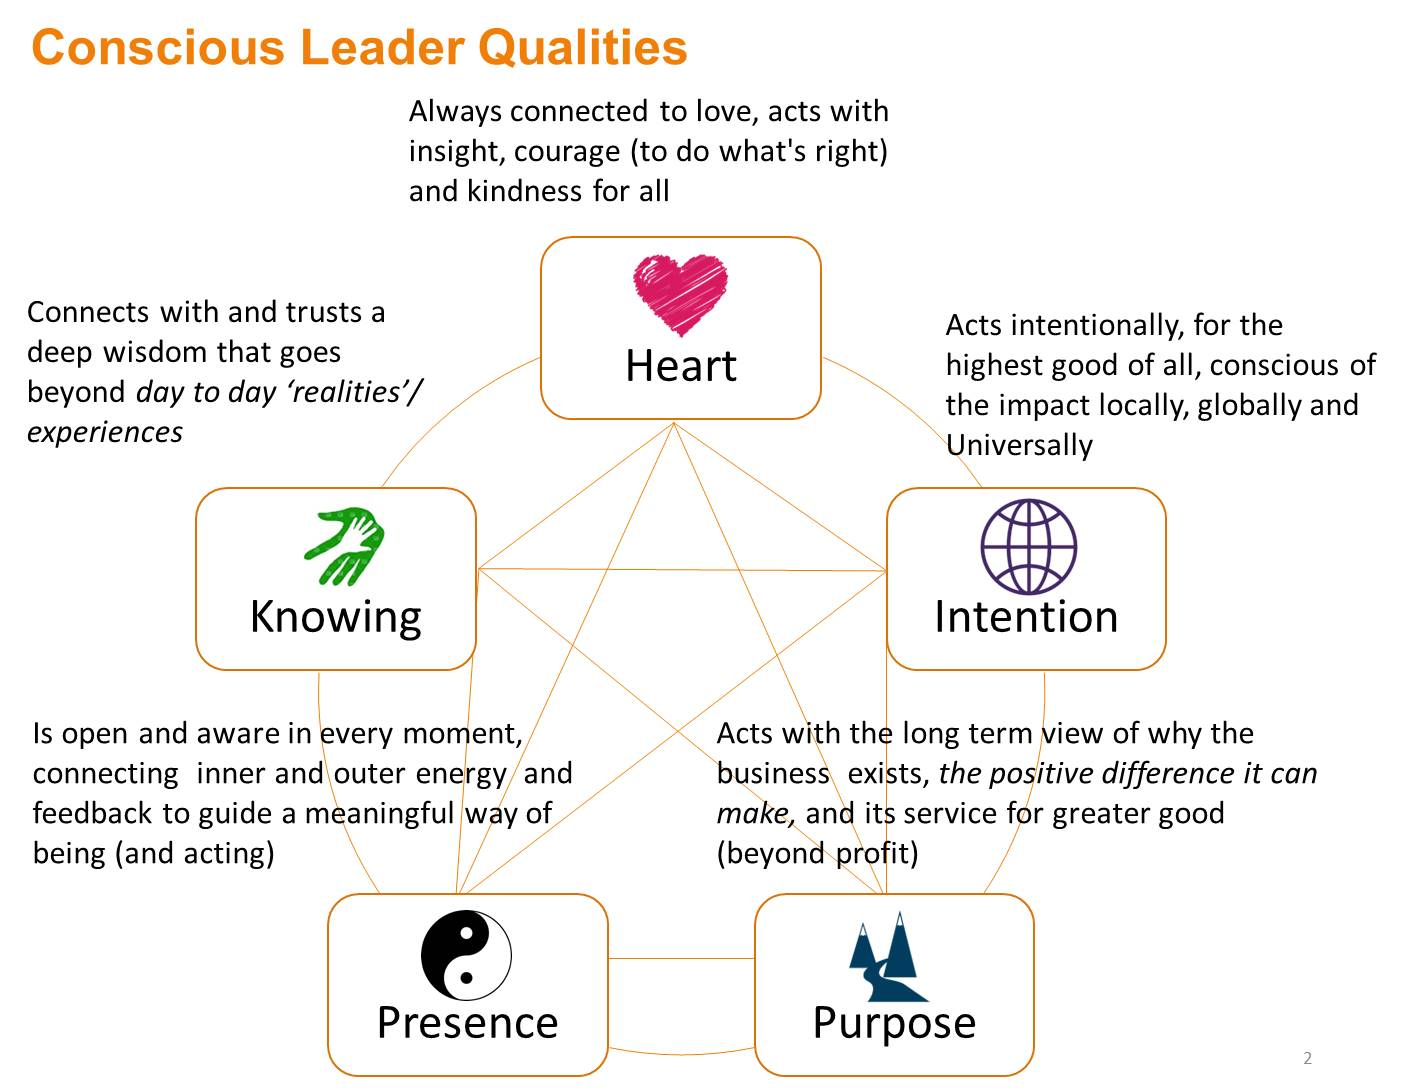 cl-qualities-web-image-v3